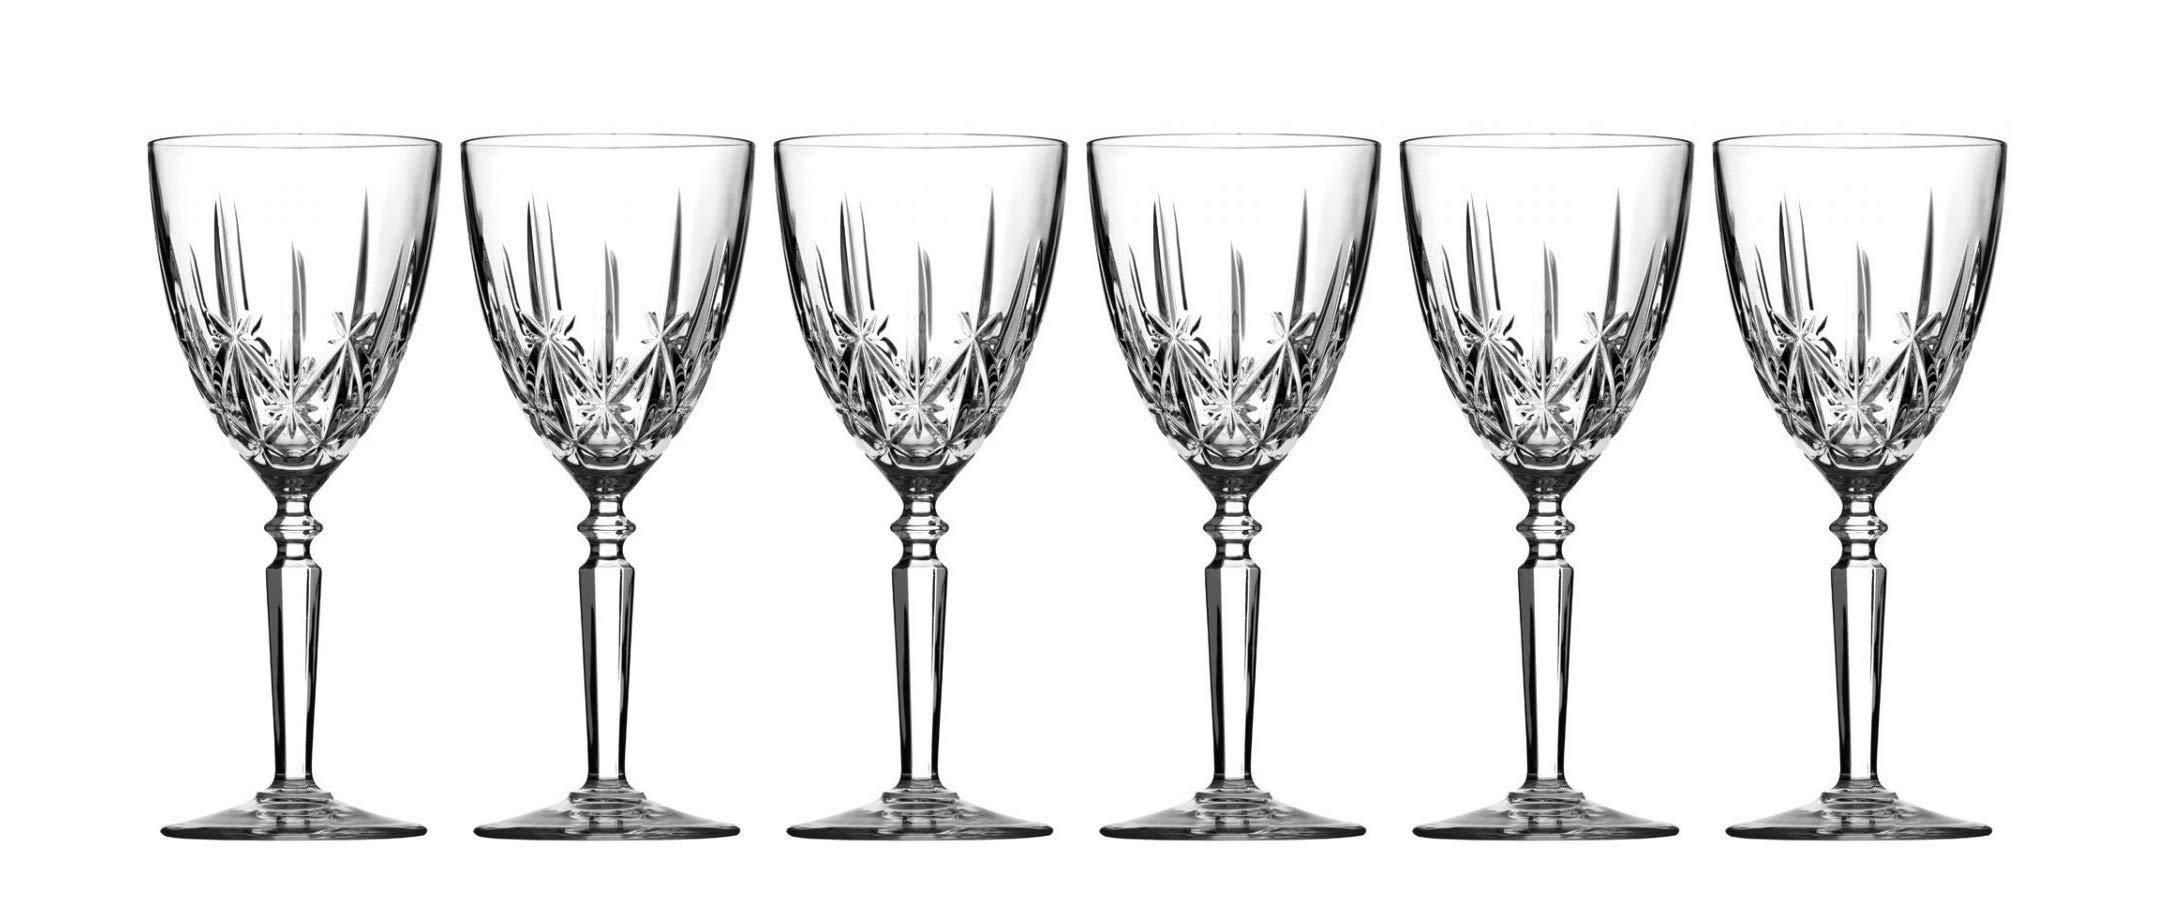 Liquor Glass - Set of 6 Glasses - By Barski - European Quality - Crystal - Footed Liqueur/Shot Glass Set - 3 ounces - Gift Boxed - Made in Europe